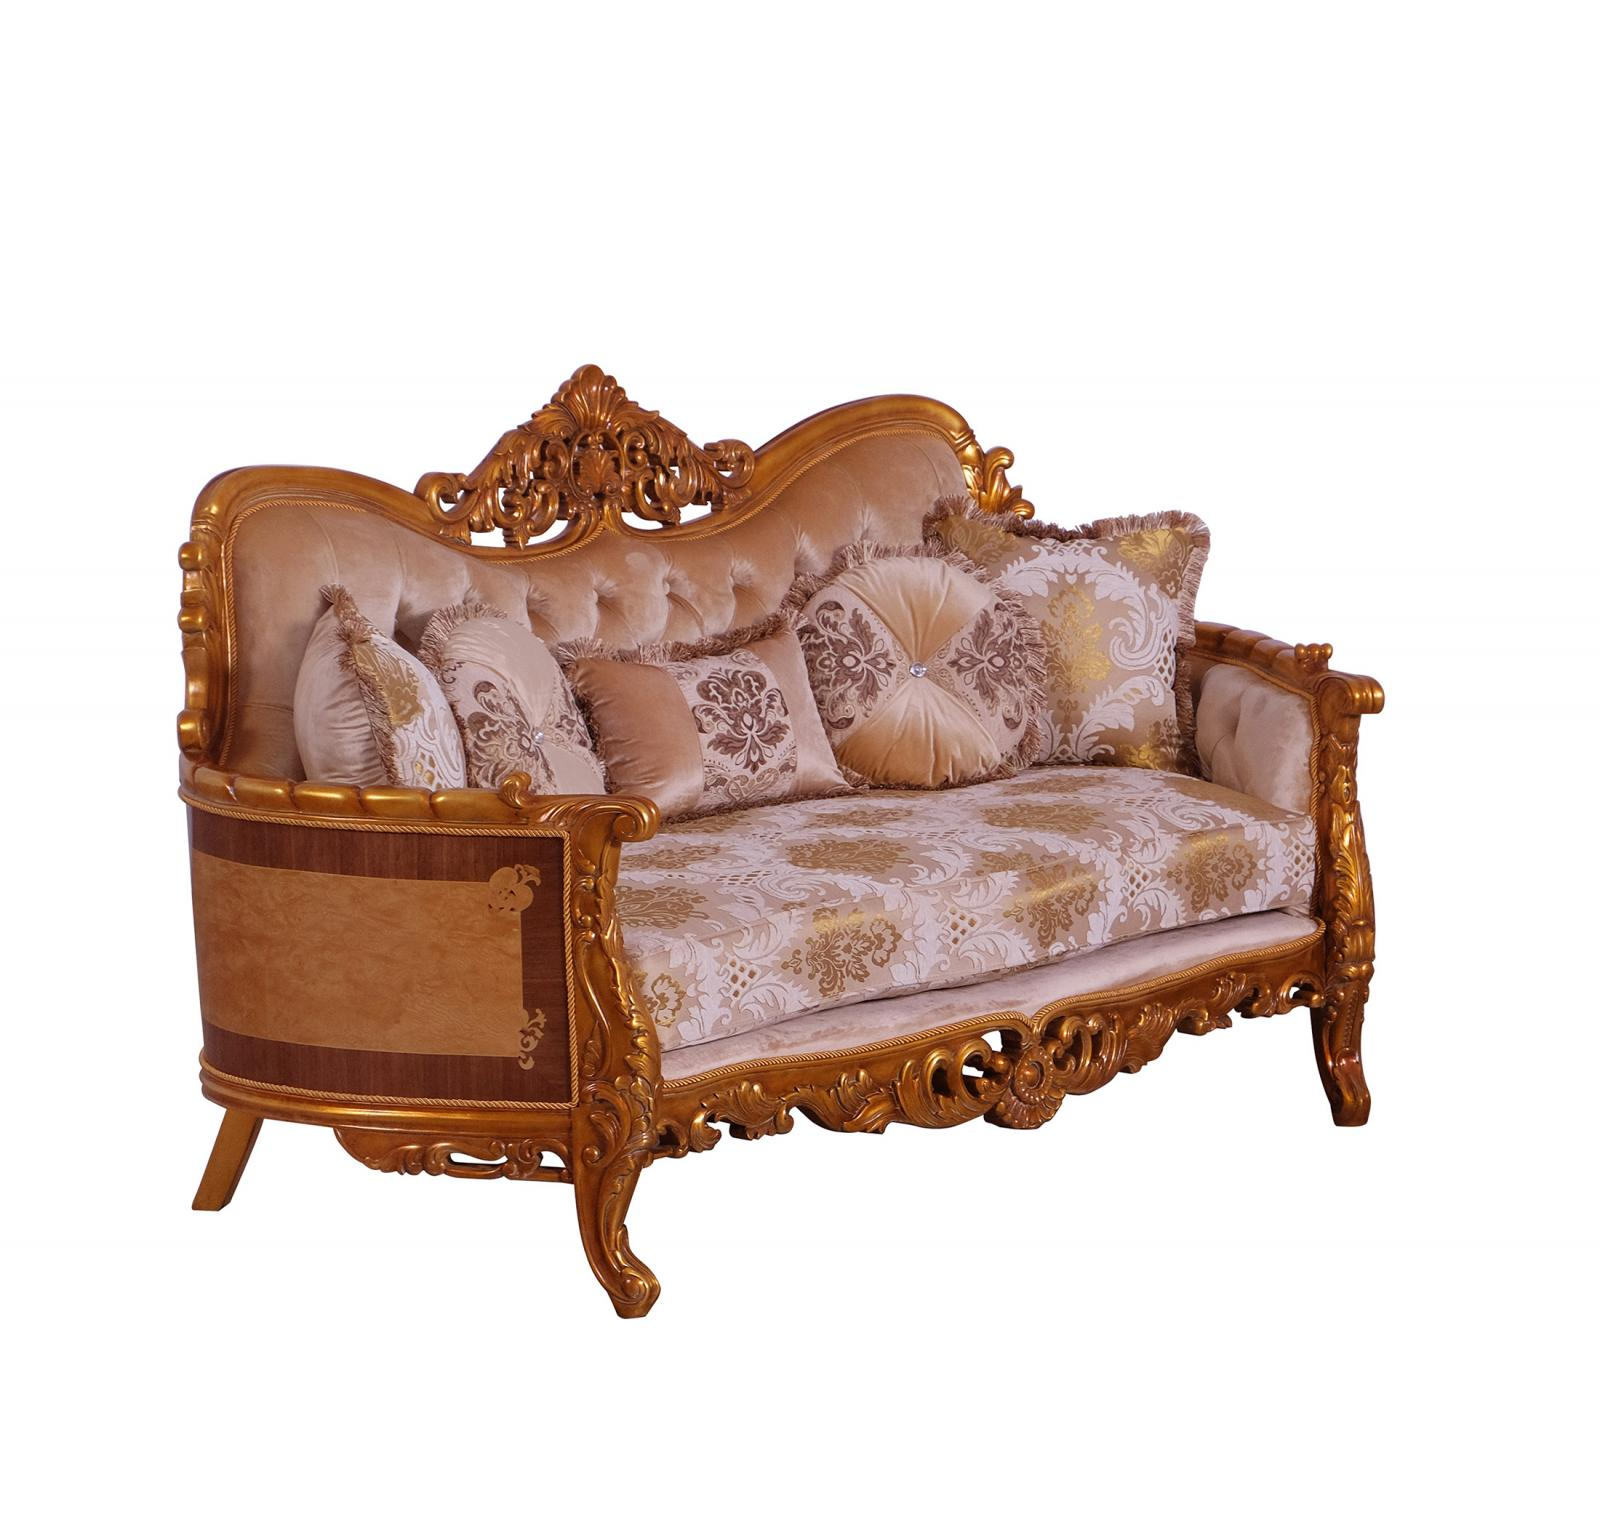 Classic  Traditional Gold  Sand Wood  Solid Hardwood and Fabric Loveseat EUROPEAN FURNITURE 31056-L